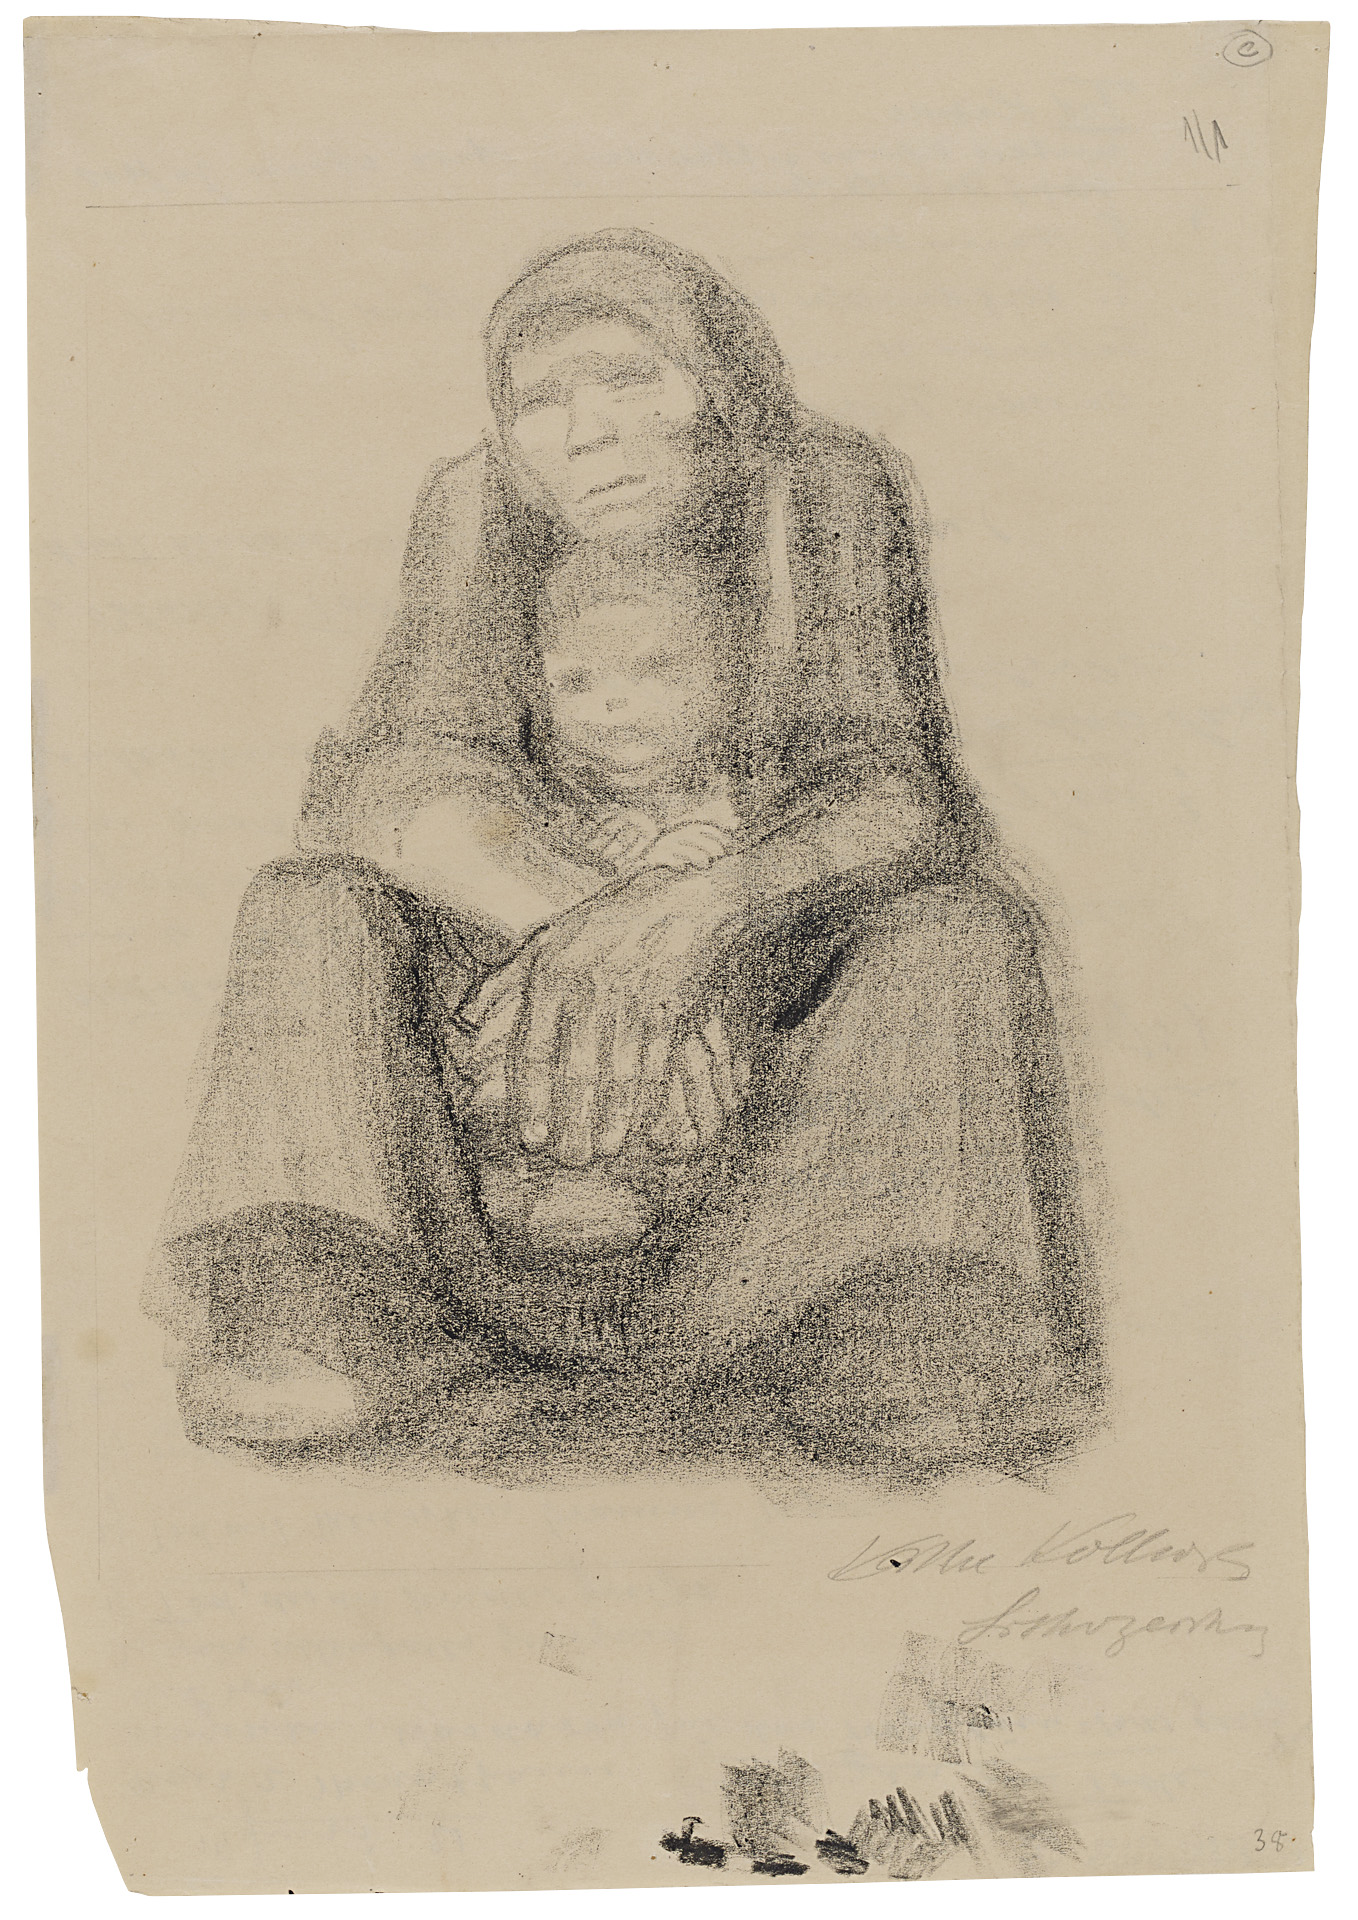 Käthe Kollwitz, Woman, seated, with Child on her Lap, 1921, lithographic drawing on brownish paper, NT 925, Cologne Kollwitz Collection © Käthe Kollwitz Museum Köln